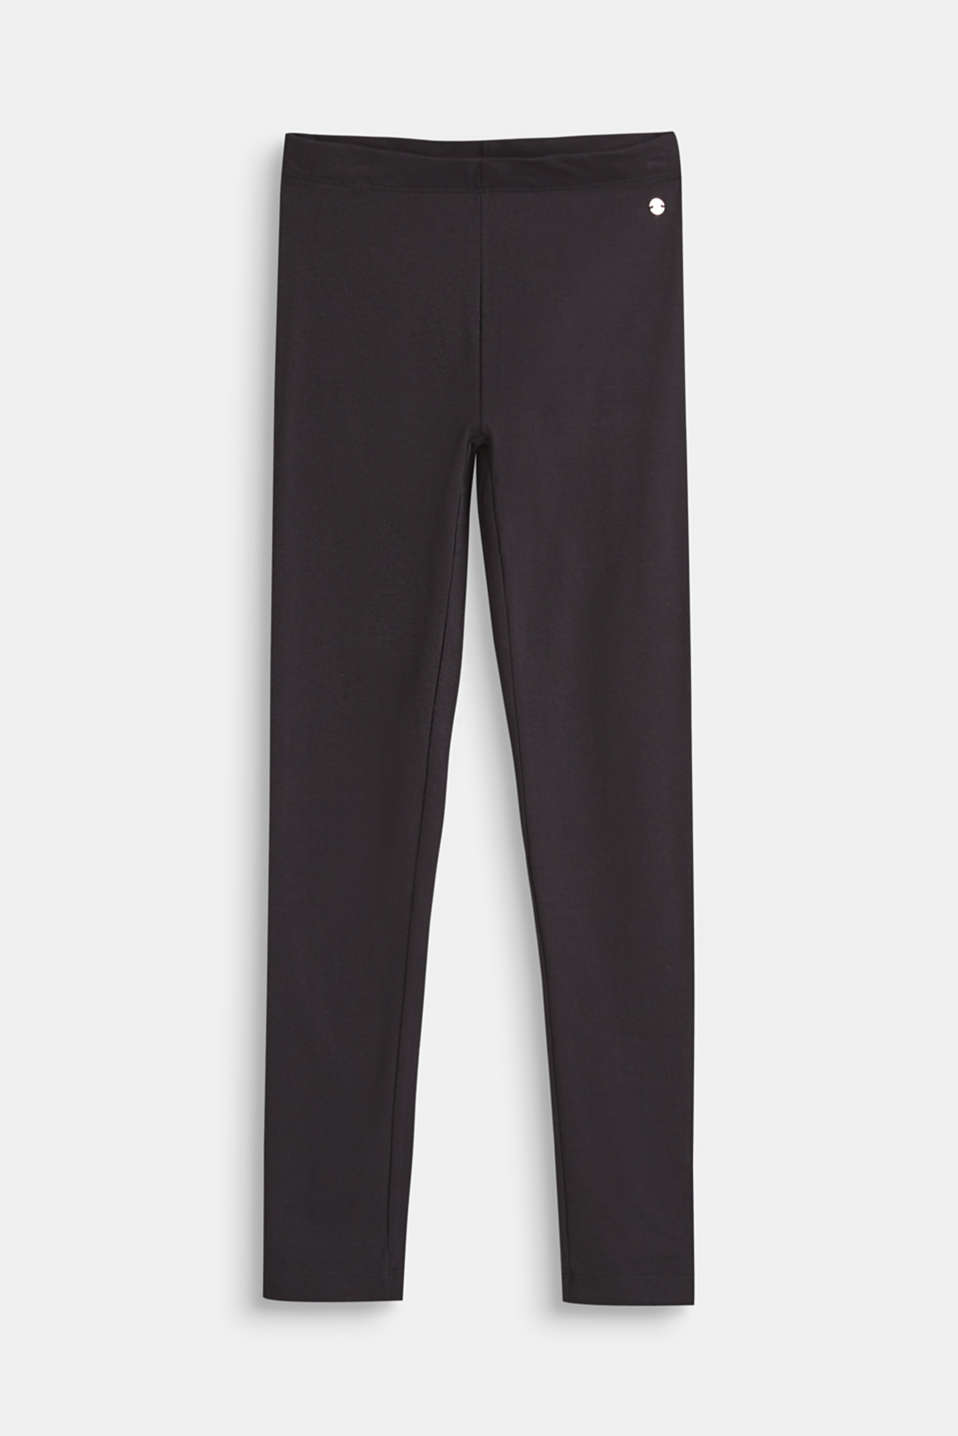 Esprit - Cotton leggings with added stretch for comfort